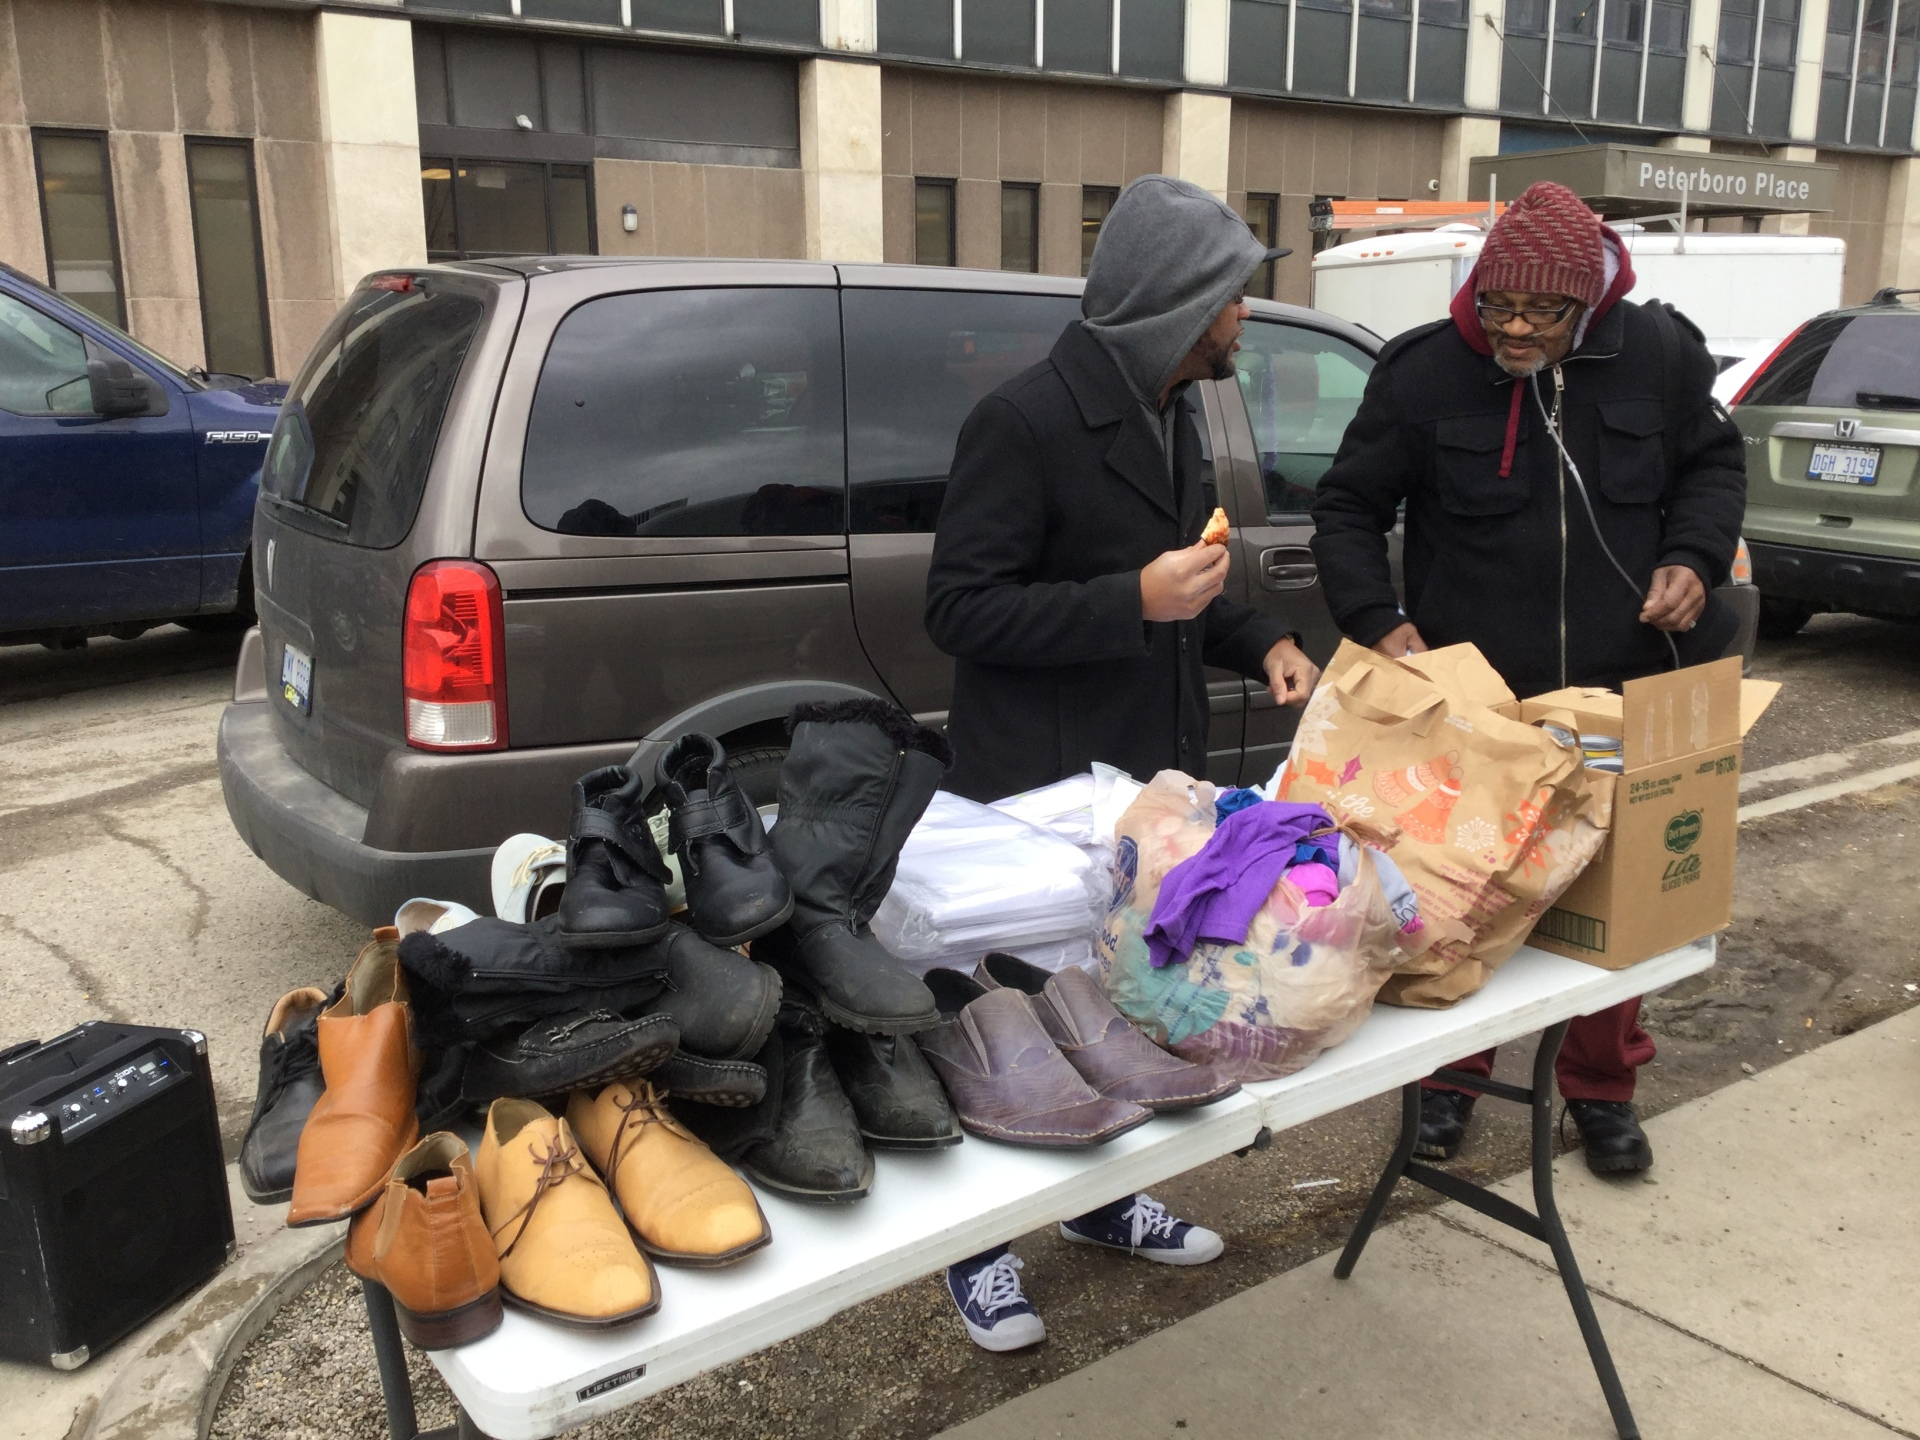 Supplying shoes and socks